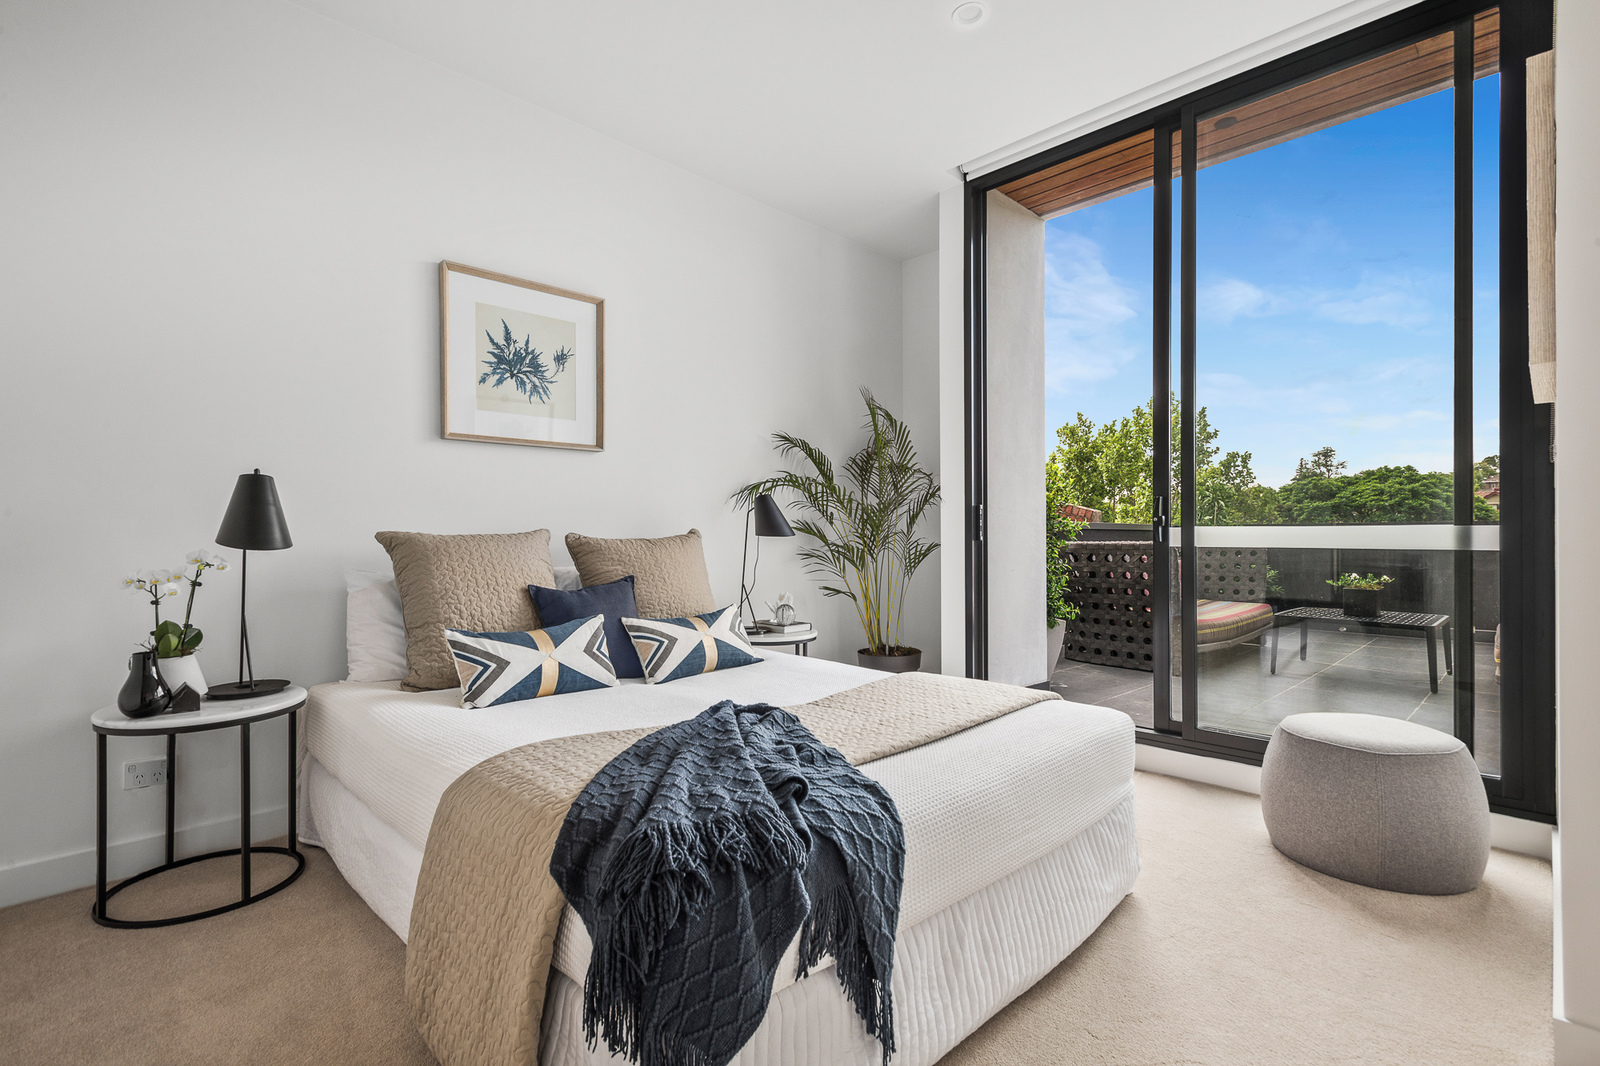 3.02/776-778 Riversdale Road, Camberwell 3124 - Image 2